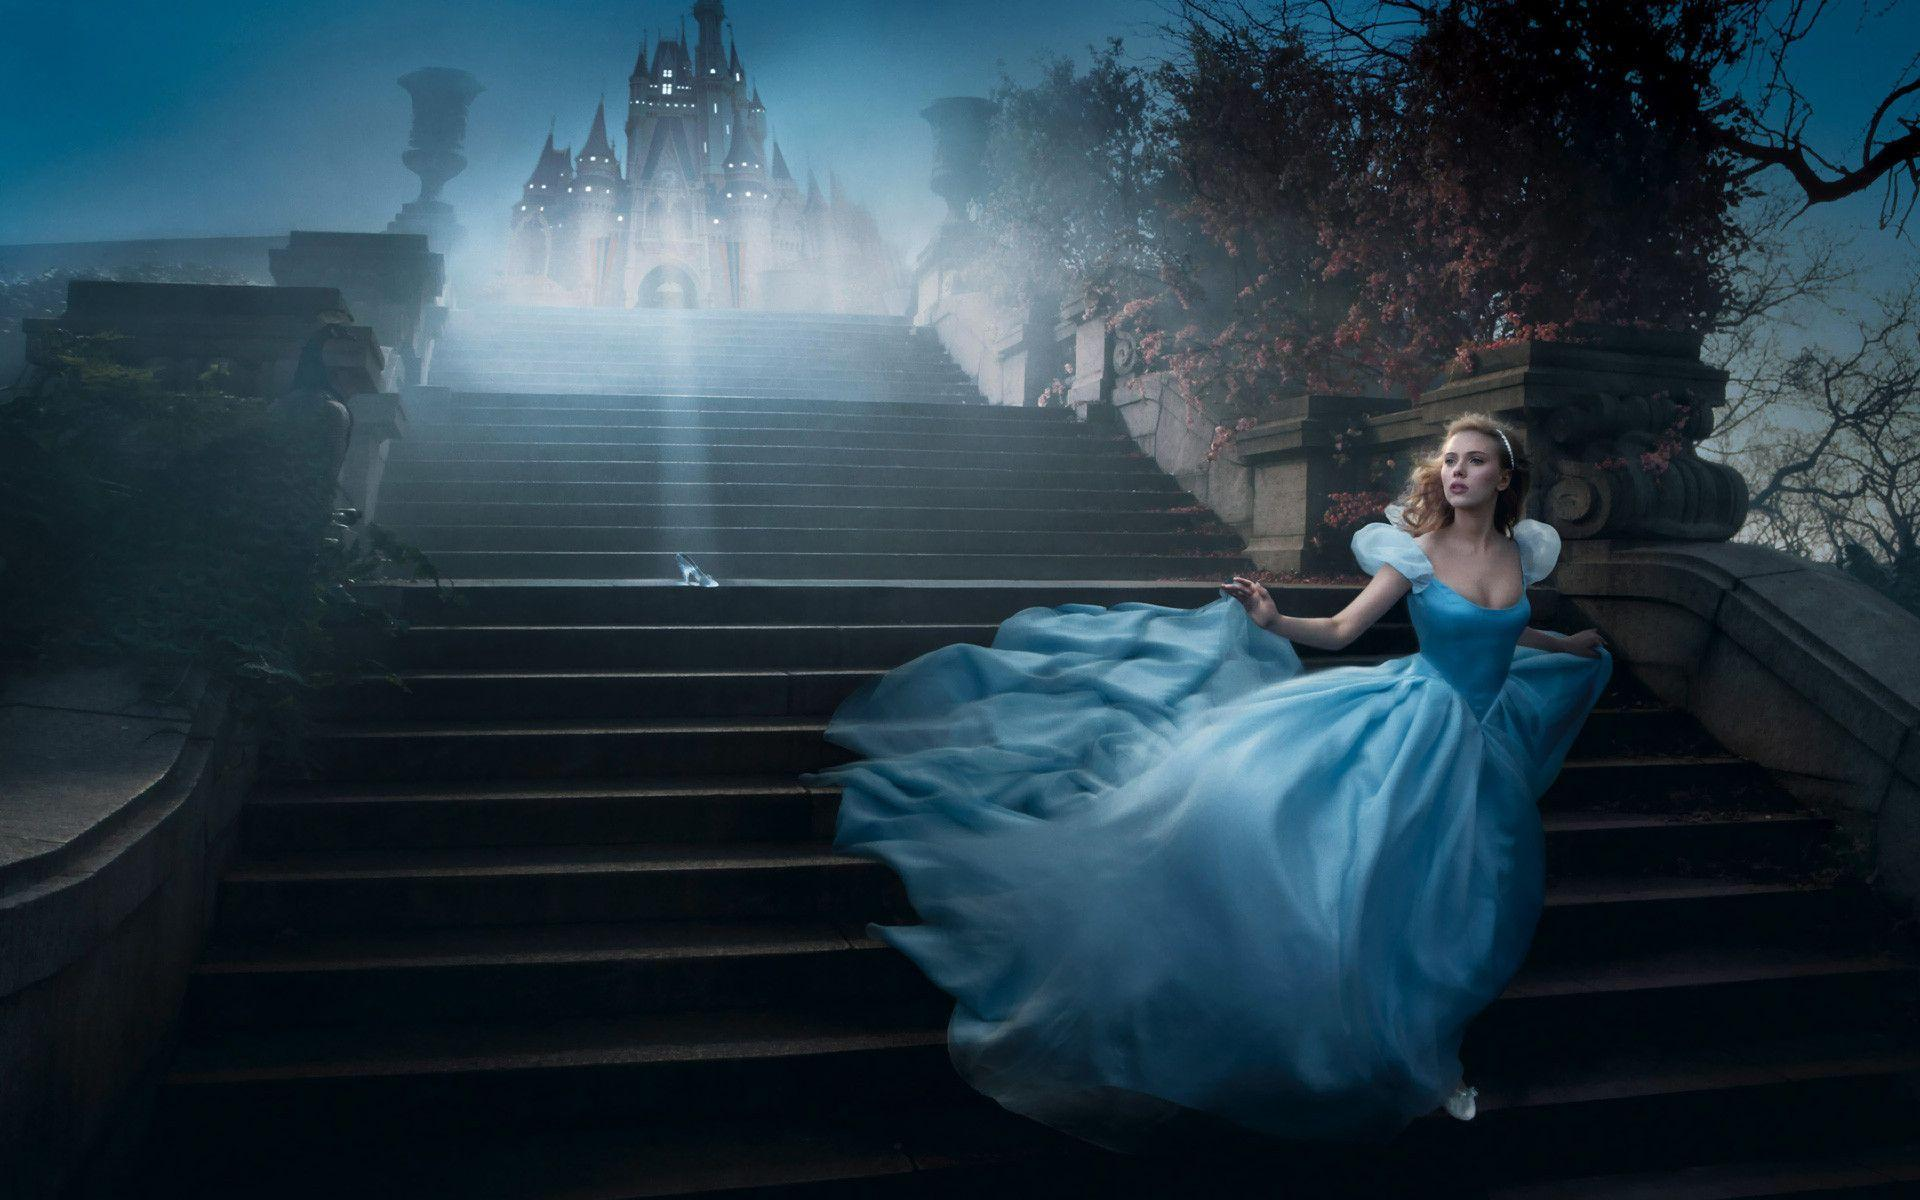 Cinderella wallpapers wallpaper cave cinderella wallpapers full hd wallpaper search page 3 thecheapjerseys Choice Image